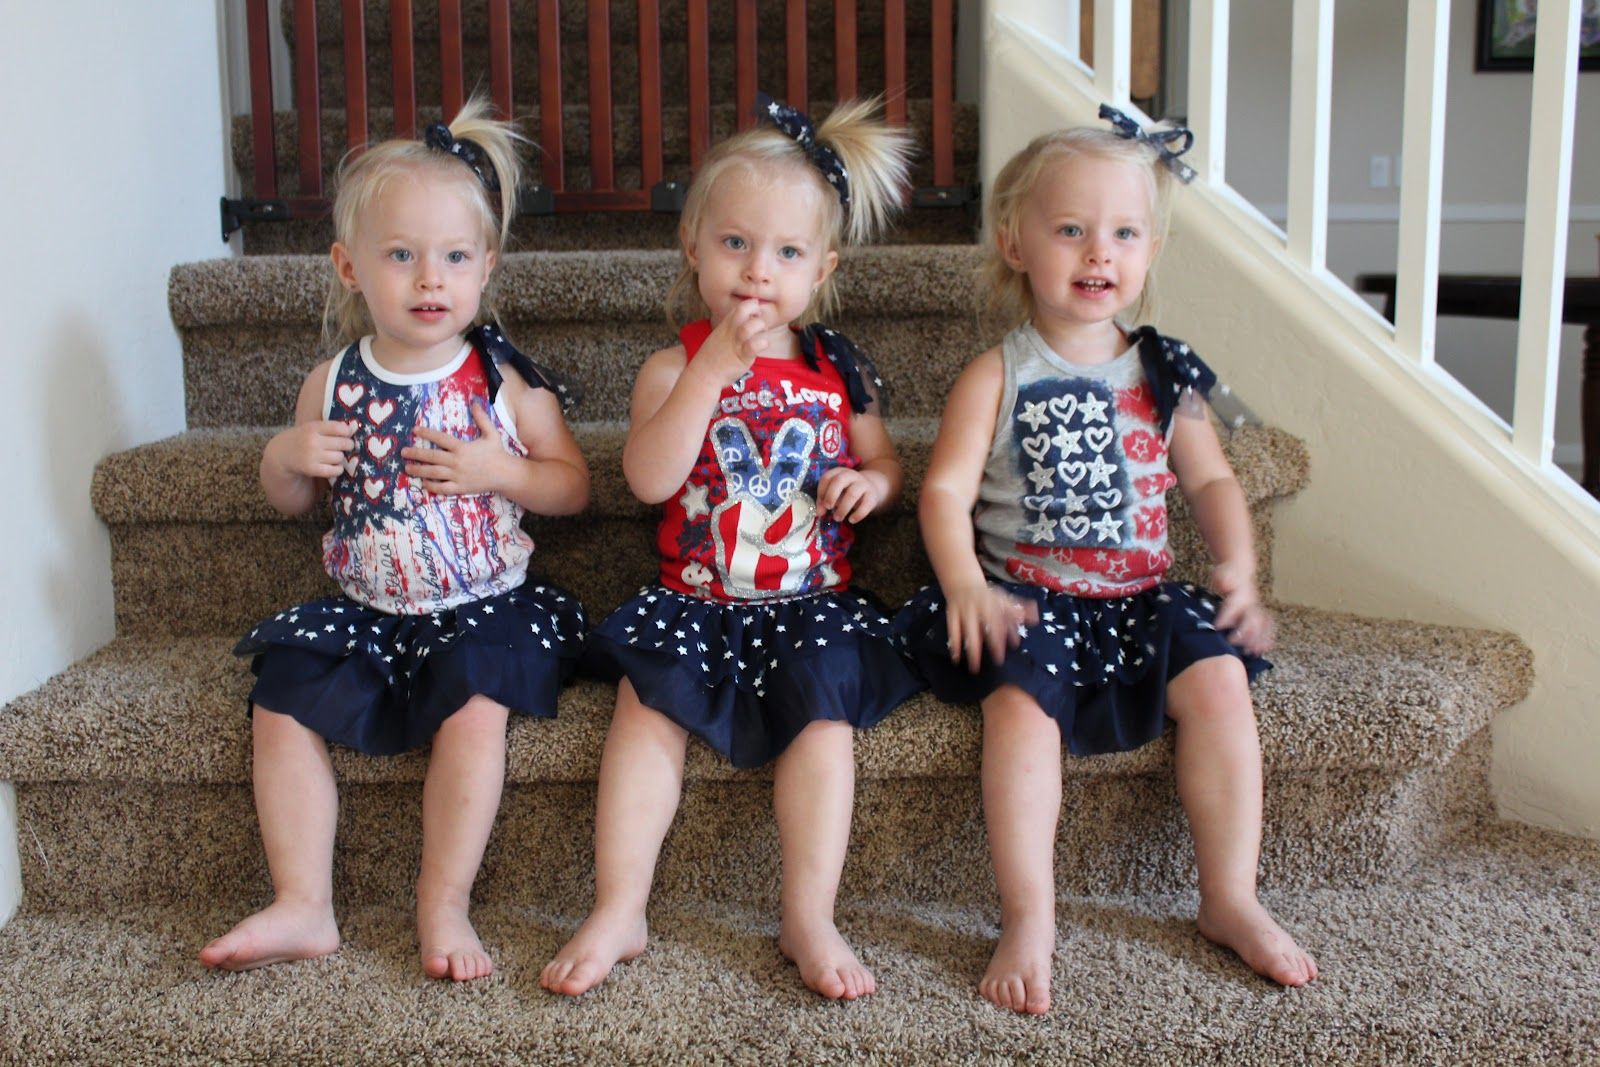 Ohio identical triplets of different sex